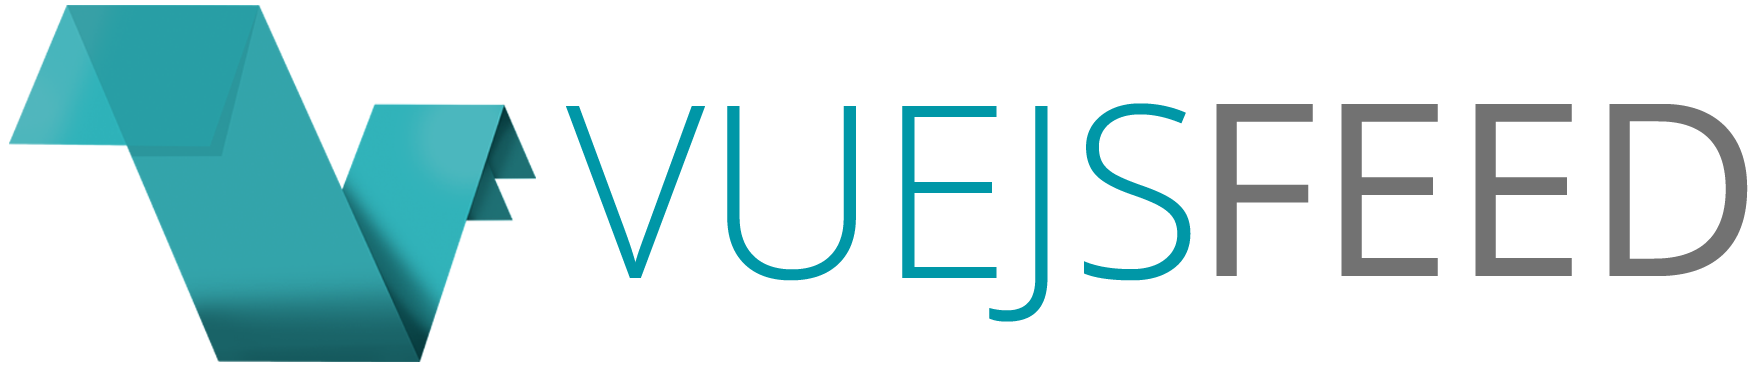 Vue js Feed - Issue #132: Vue 2 6 released - Quasar 1 0